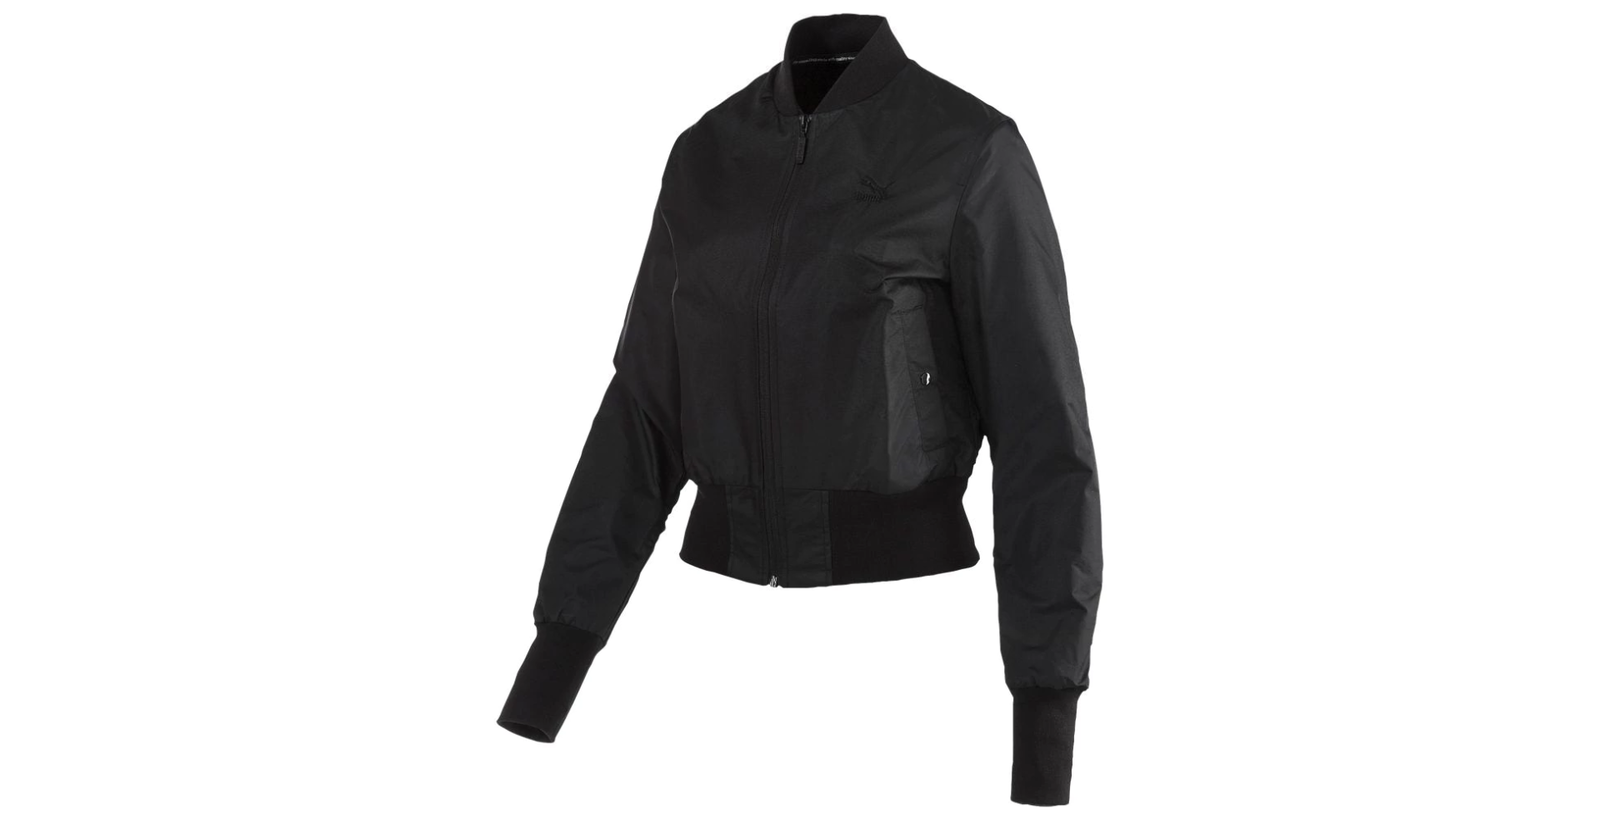 Puma Women's Active Iridescent Black Bomber Jacket - Size S